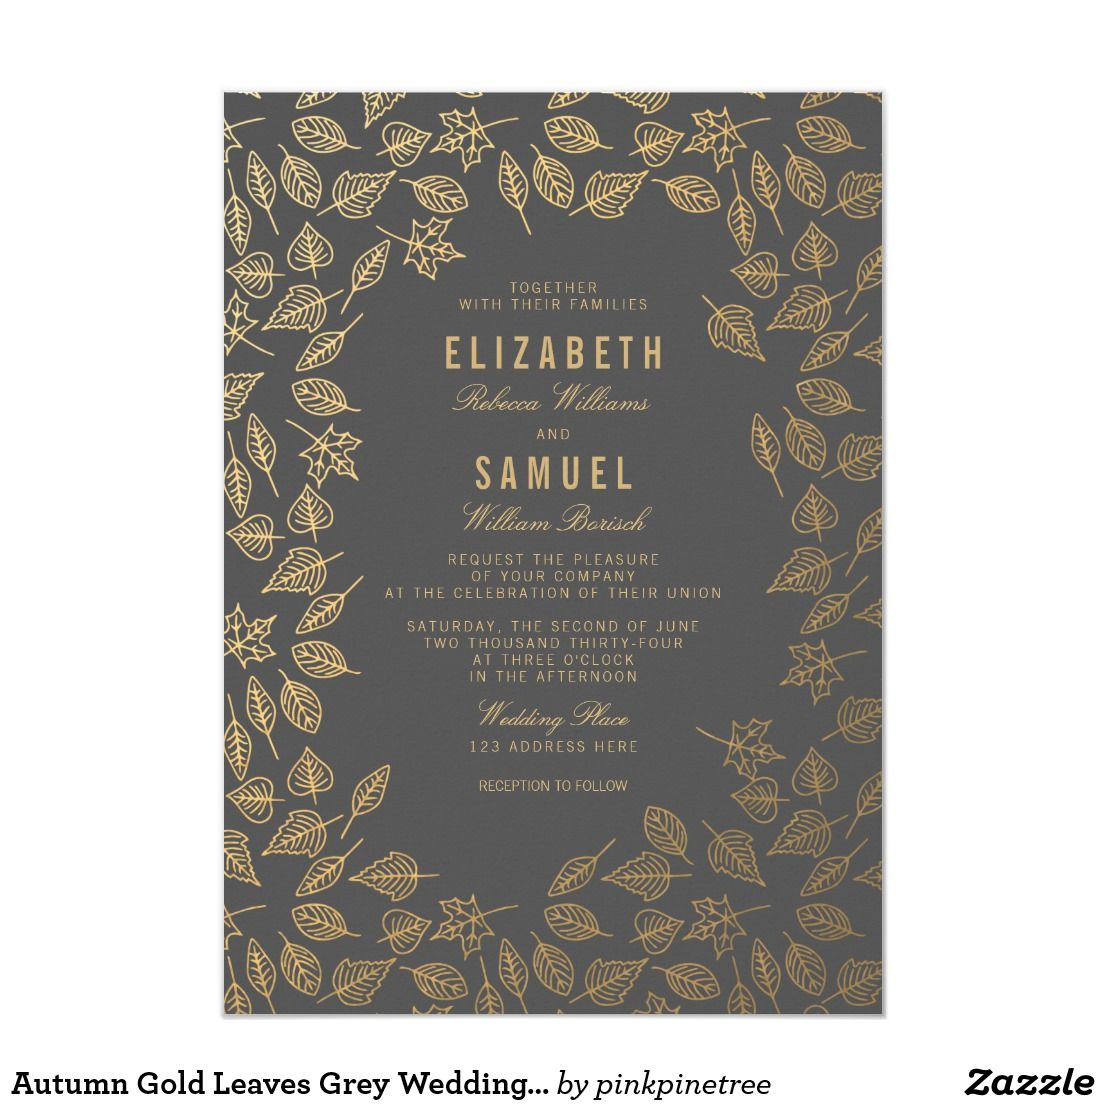 Autumn Gold Leaves Grey Wedding Invitation | Zazzle.co.uk | Grey ...